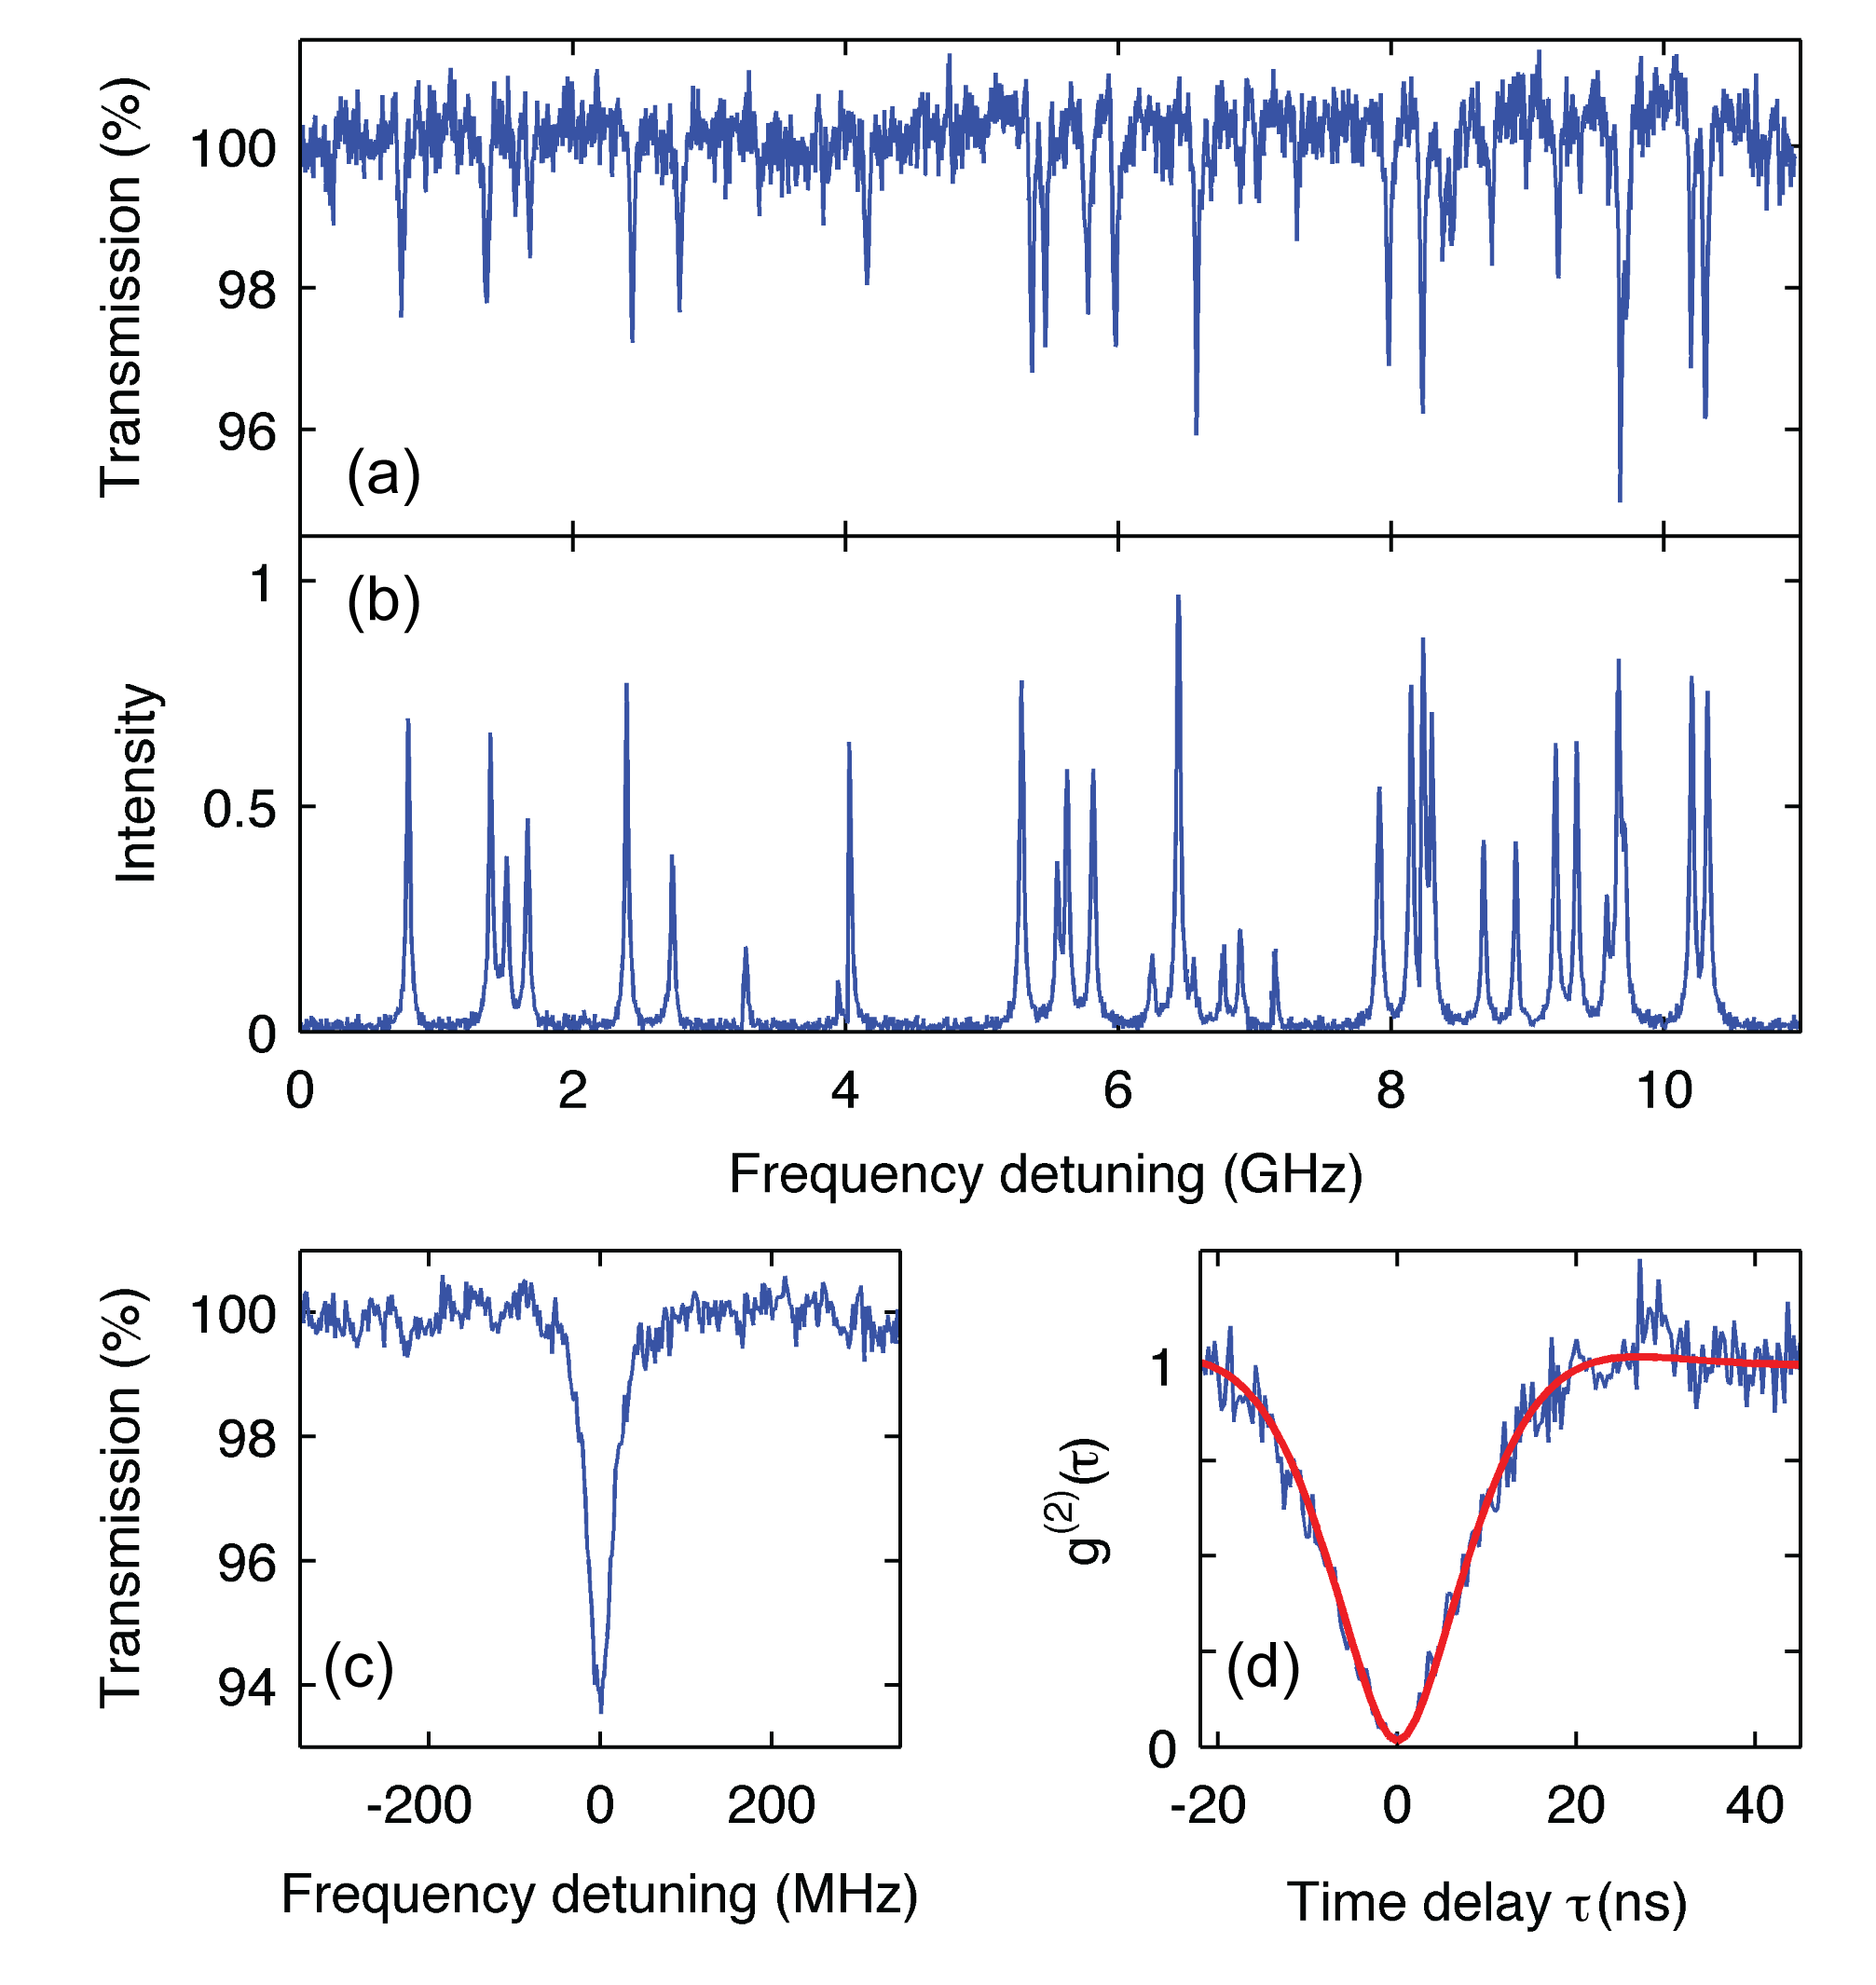 a) Extinction spectrum recorded in transmission via the angled end of the nanoguide. We emphasize that these represent direct count rates without using lock-in detection. b) Stokes-shifted fluorescence spectrum recorded at the same time as (a). c) A zoom into an extinction dip of 6.5% recorded from a single molecule. The excitation wavelength for the data in this figure was around 771 nm. d) Second-order autocorrelation function of the photons emitted on the resonance of (c). Here, we detected the Stokes-shifted fluorescence from the side. The recorded value of